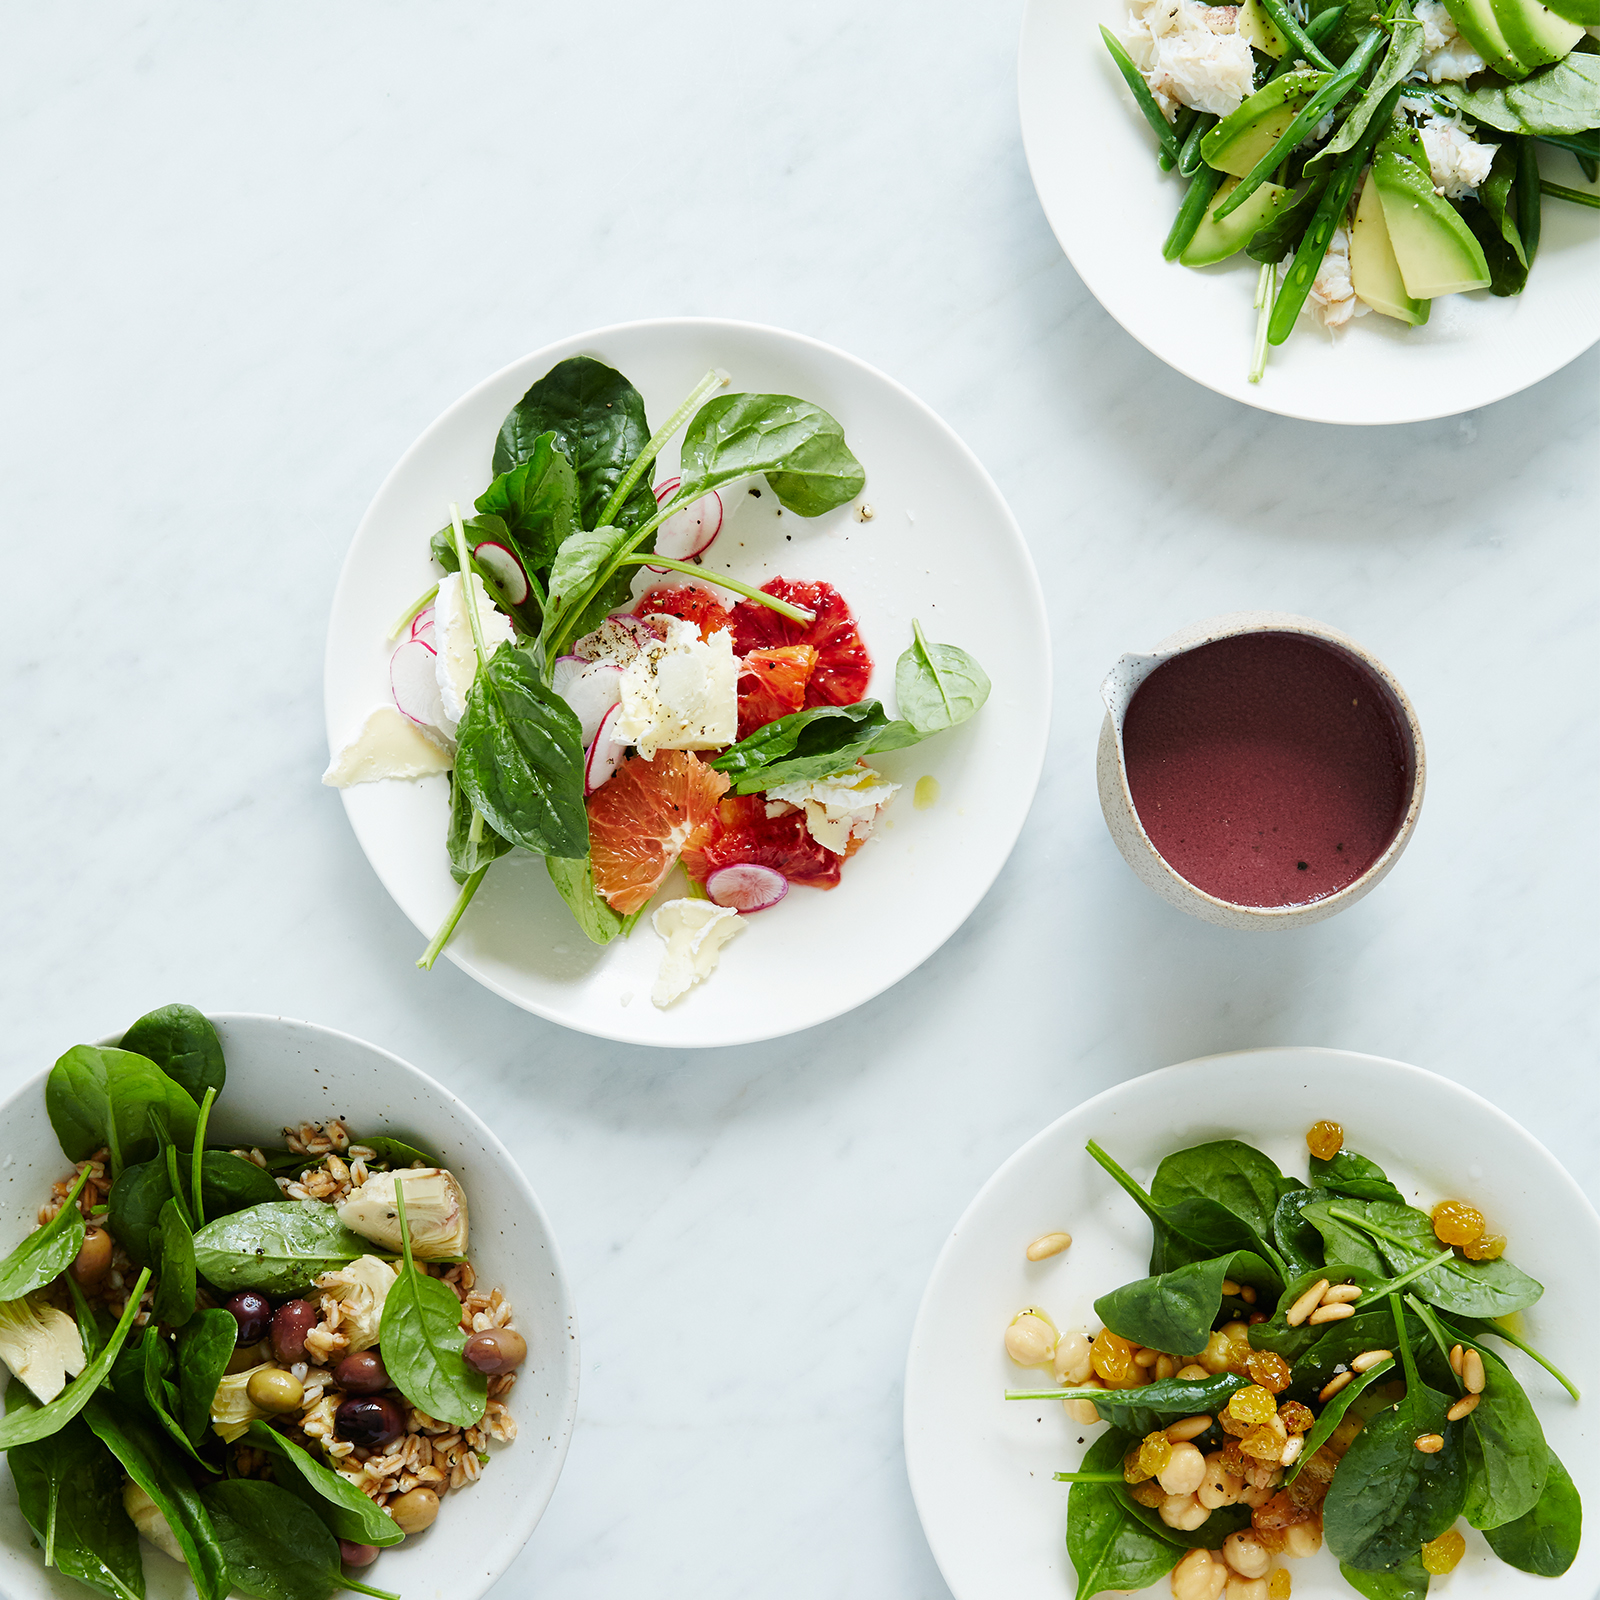 Best New Spinach Salad Recipes